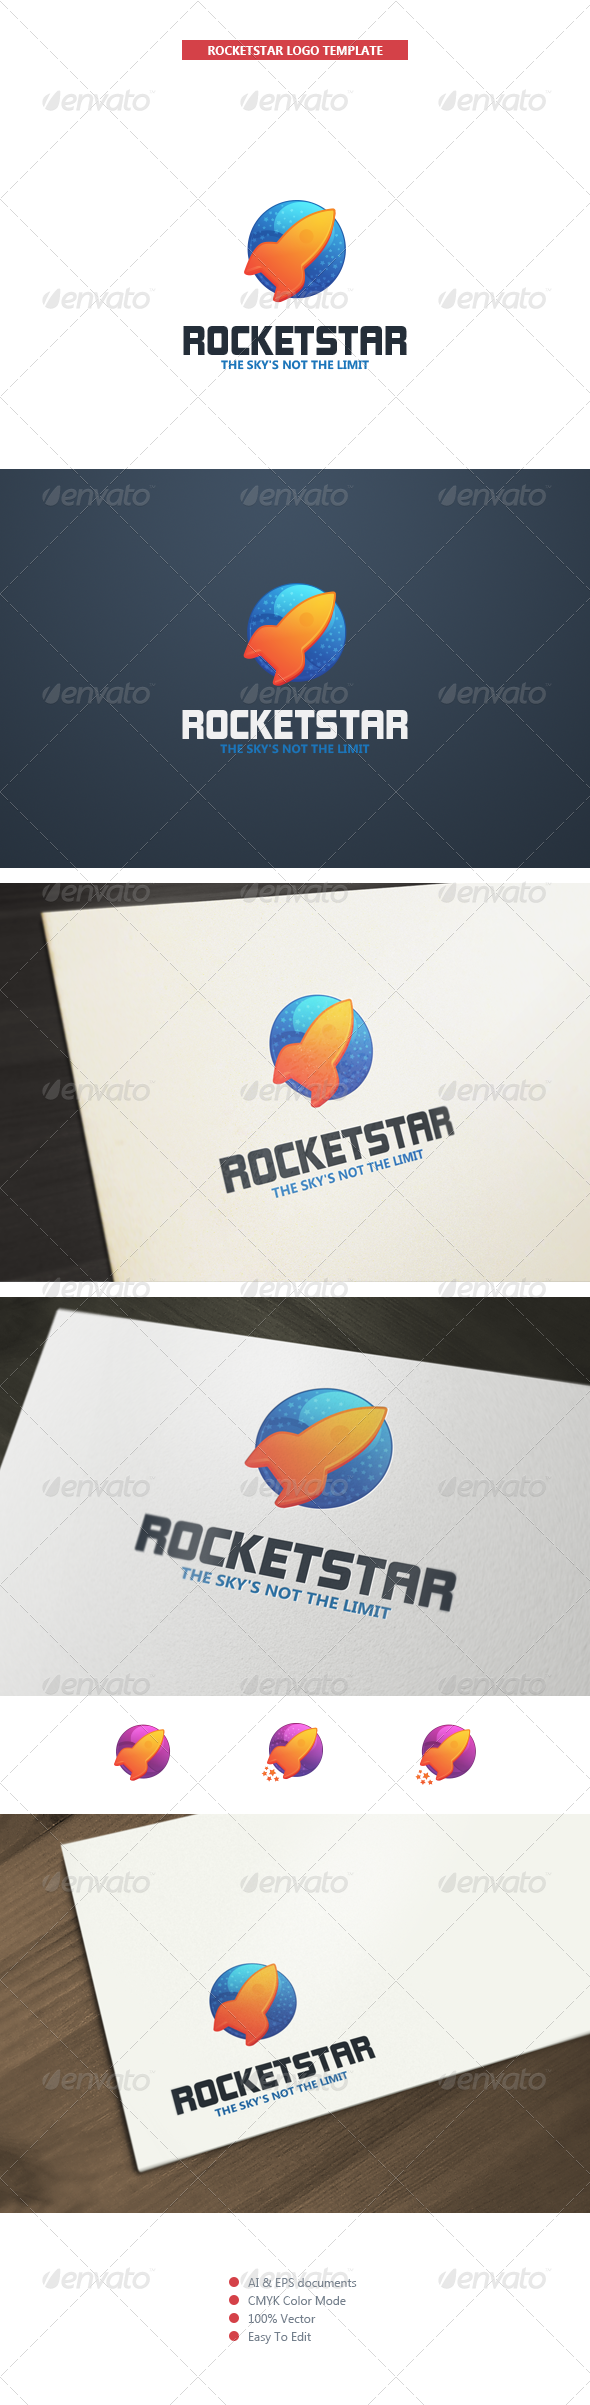 GraphicRiver RocketStar Logo Template 5299032